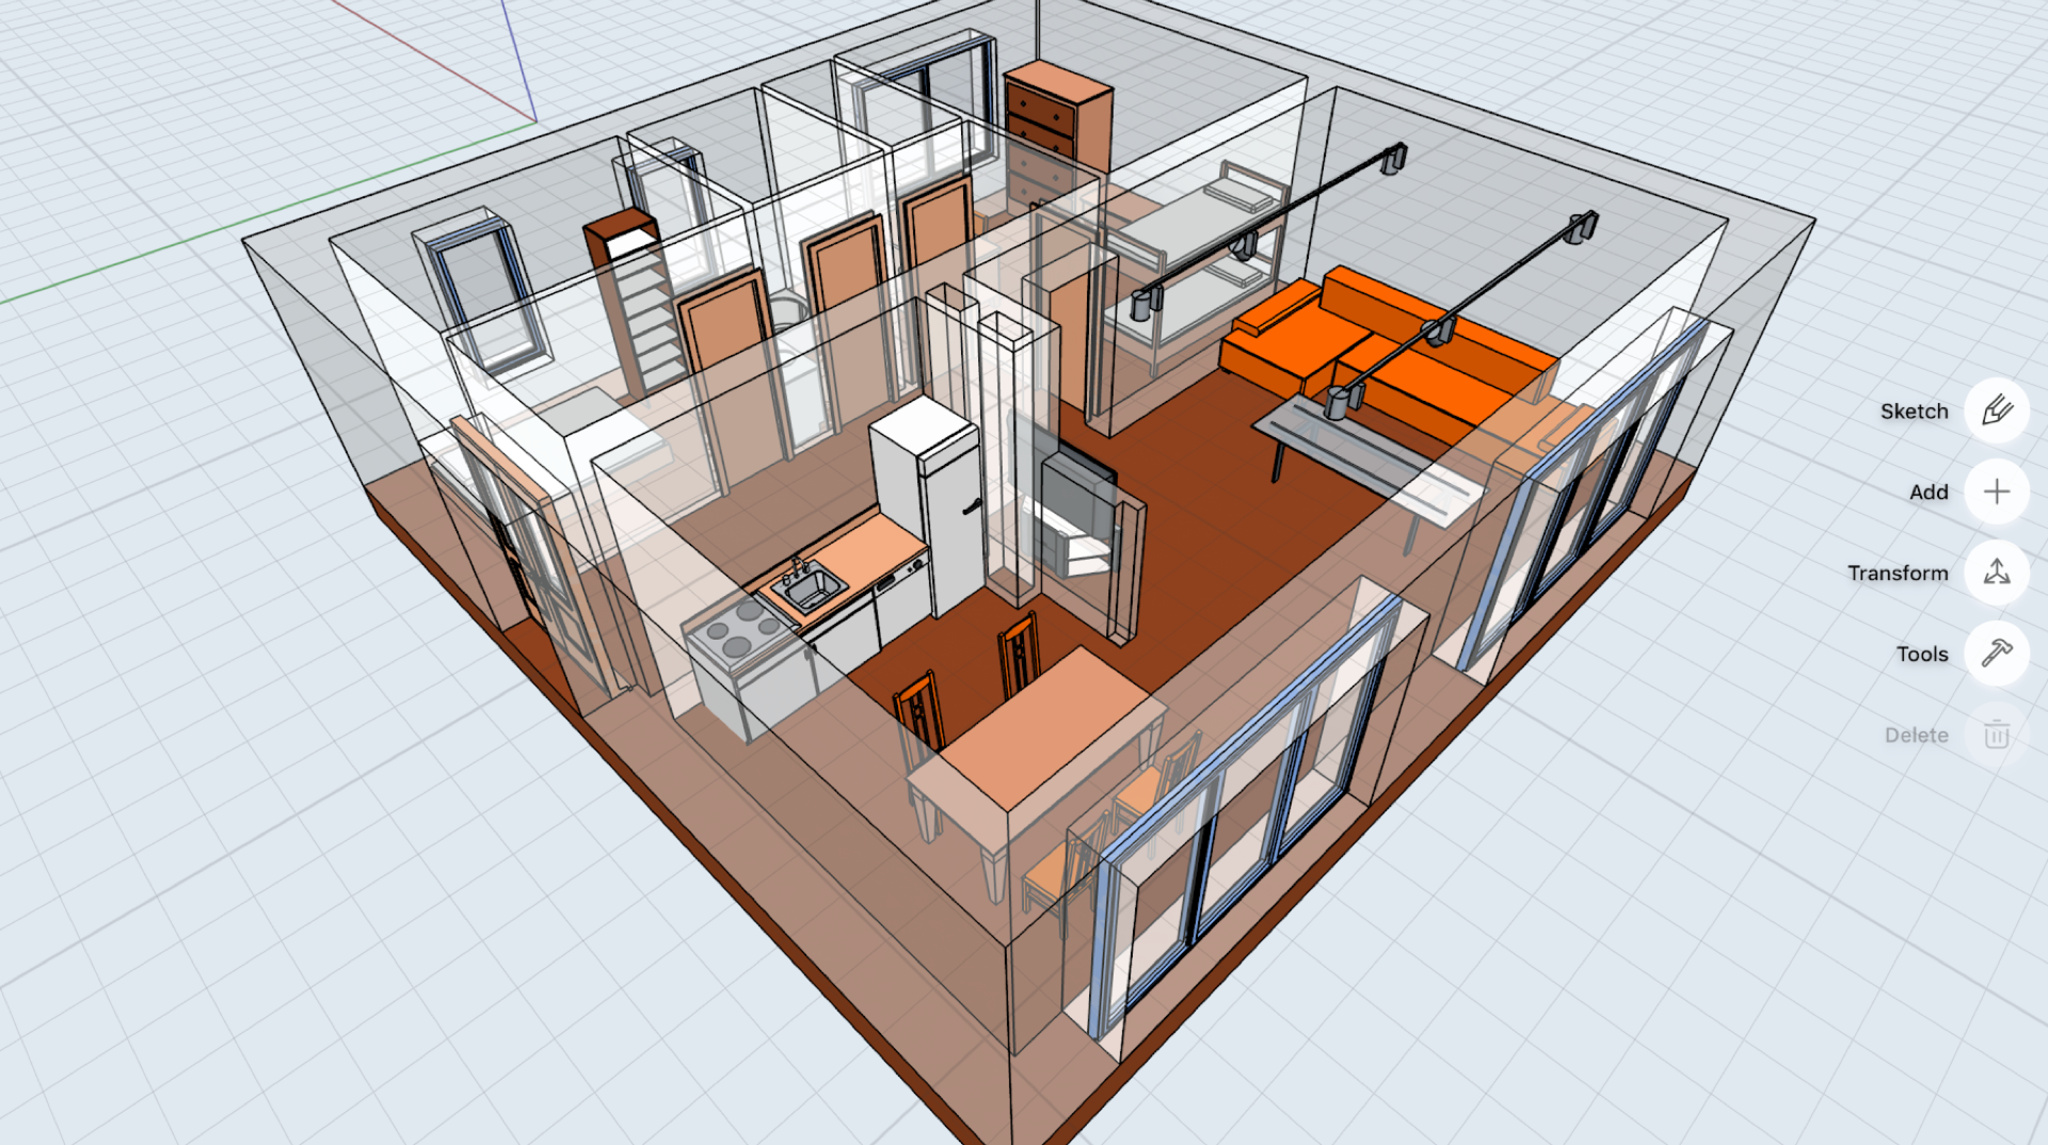 Shapr 3D canvas featuring a one bedroom apartment